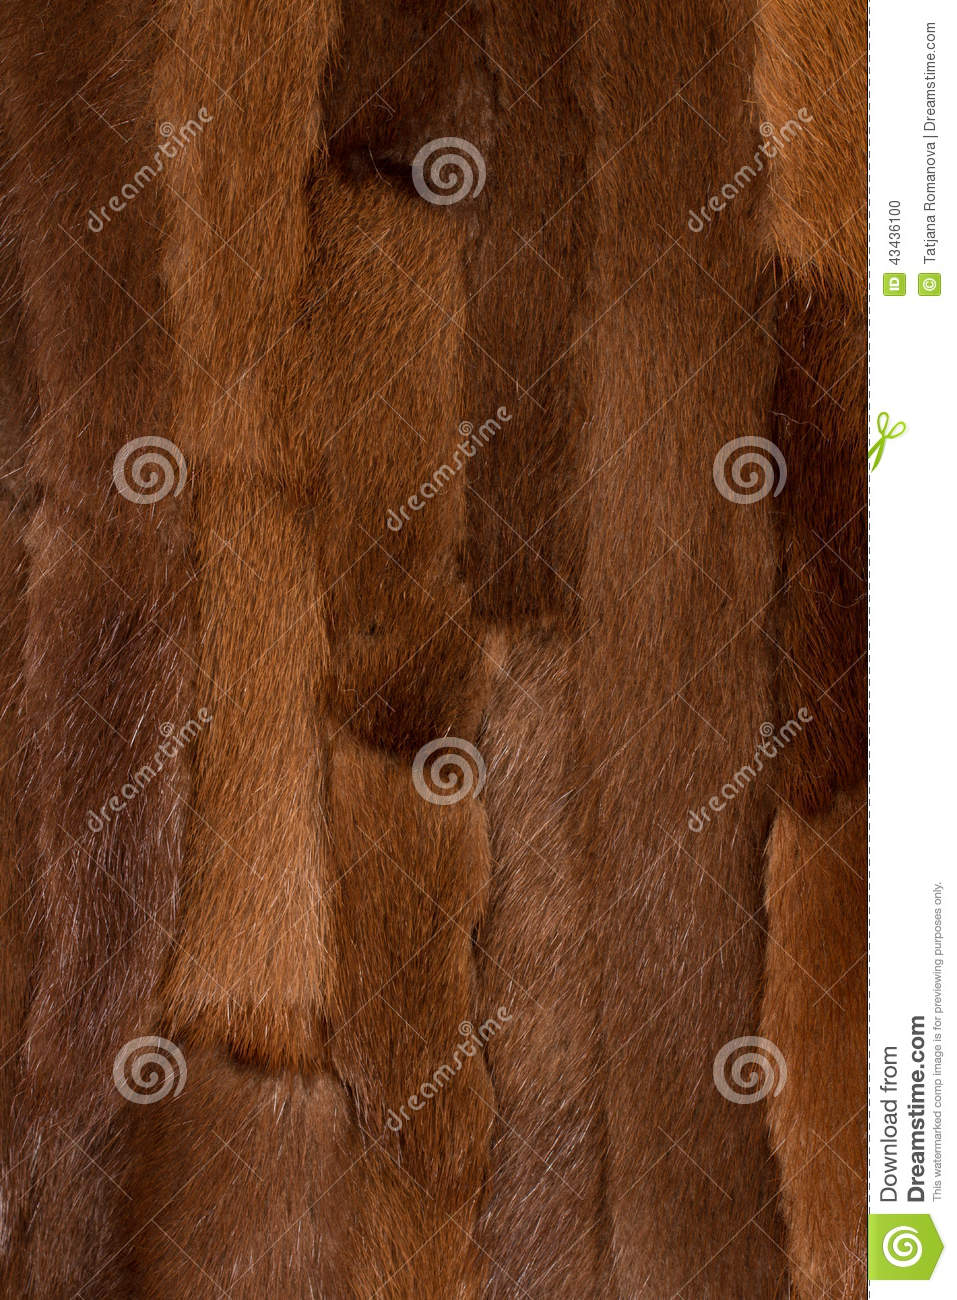 Fur texture background